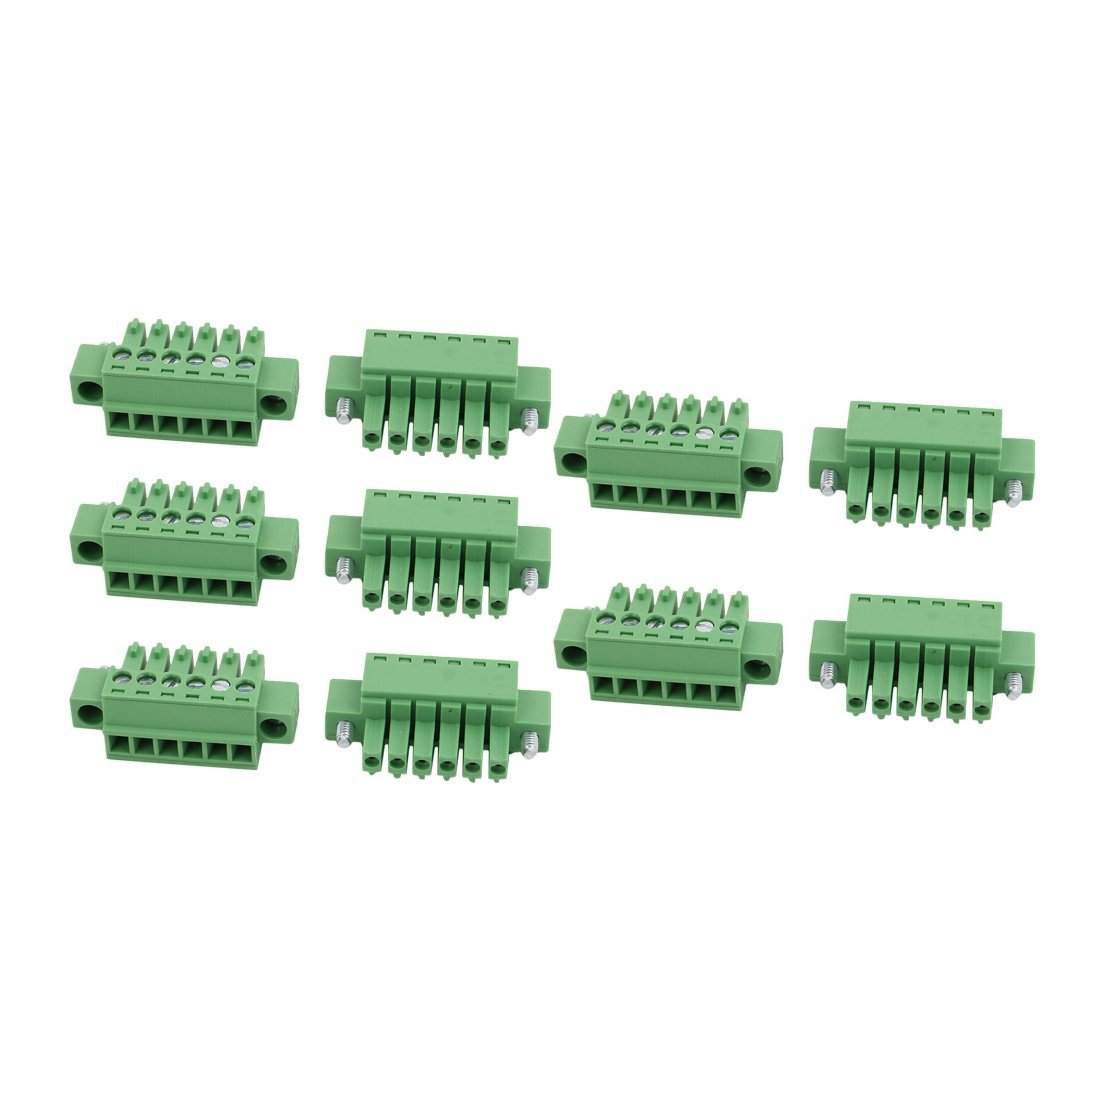 uxcell 10Pcs LC1M AC300V 8A 3.5mm Pitch 6P PCB Mount Terminal Block Wire Connector